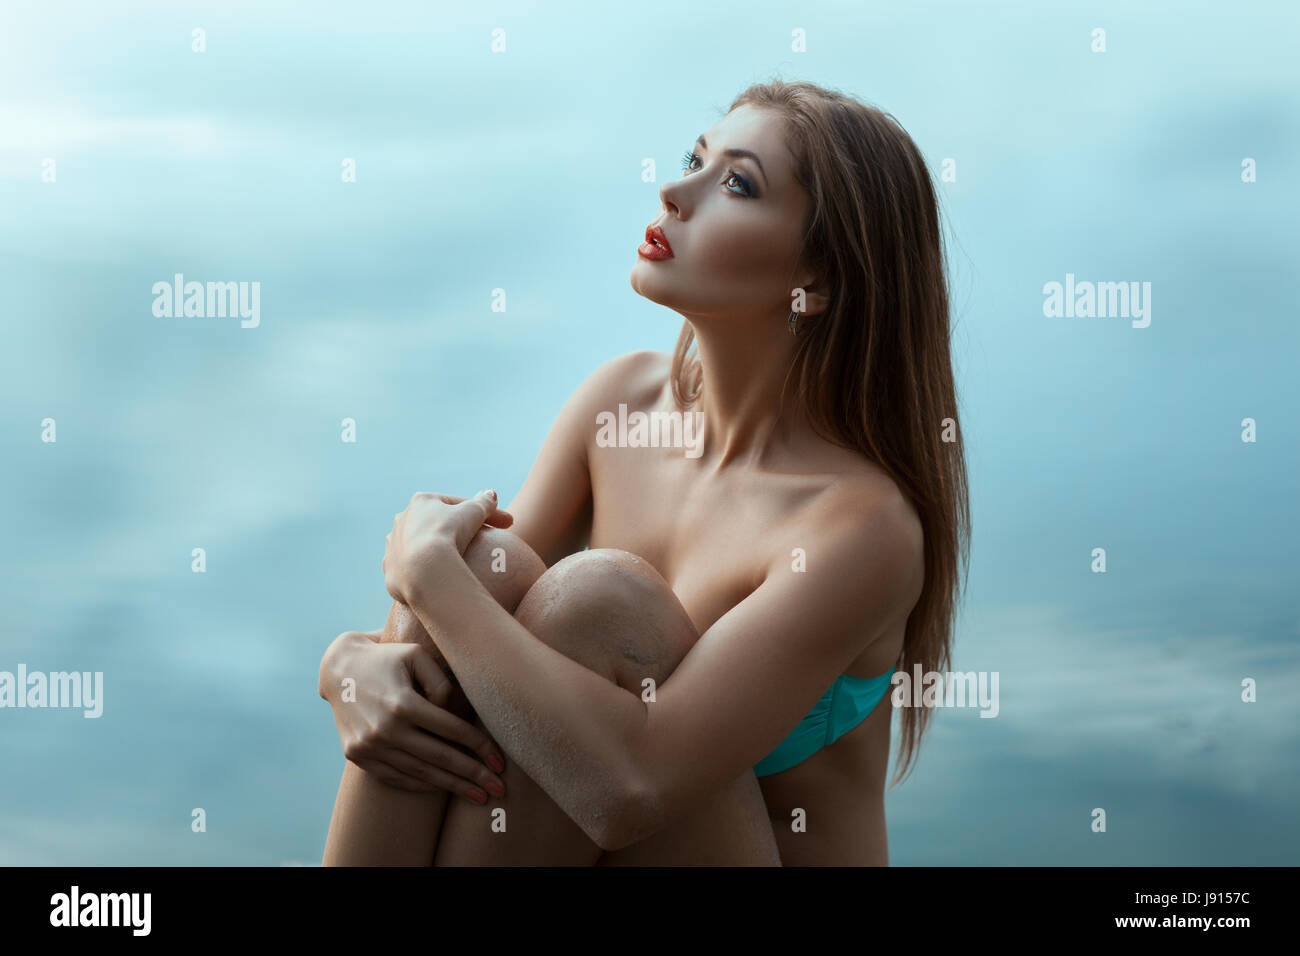 Portrait of a beautiful and tender girl in the clouds. She pursed her knees and wrapped her arms. - Stock Image